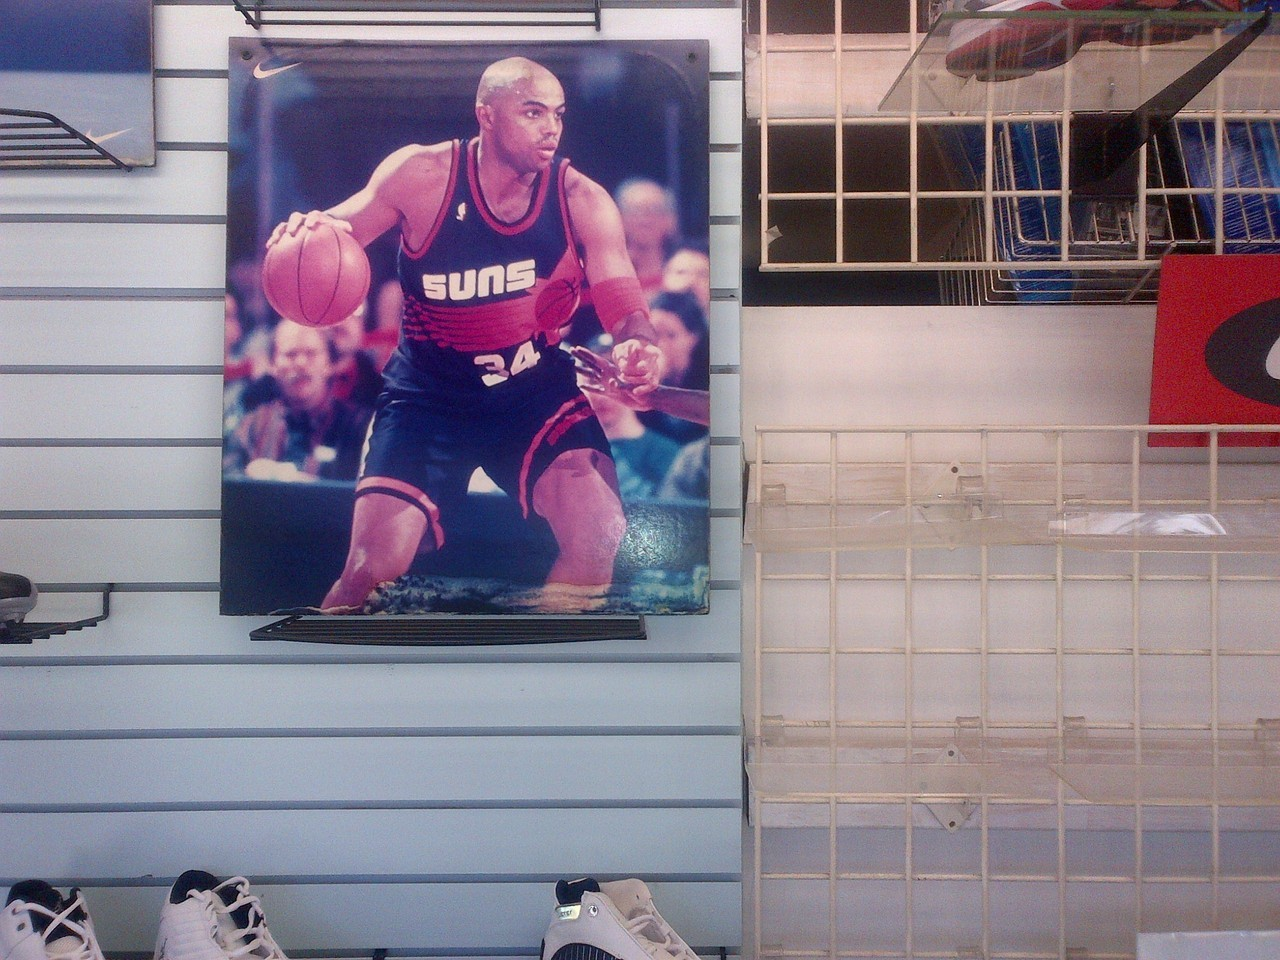 With all these sneaker advertisements online you often forget how depressing actual shoe stores often are